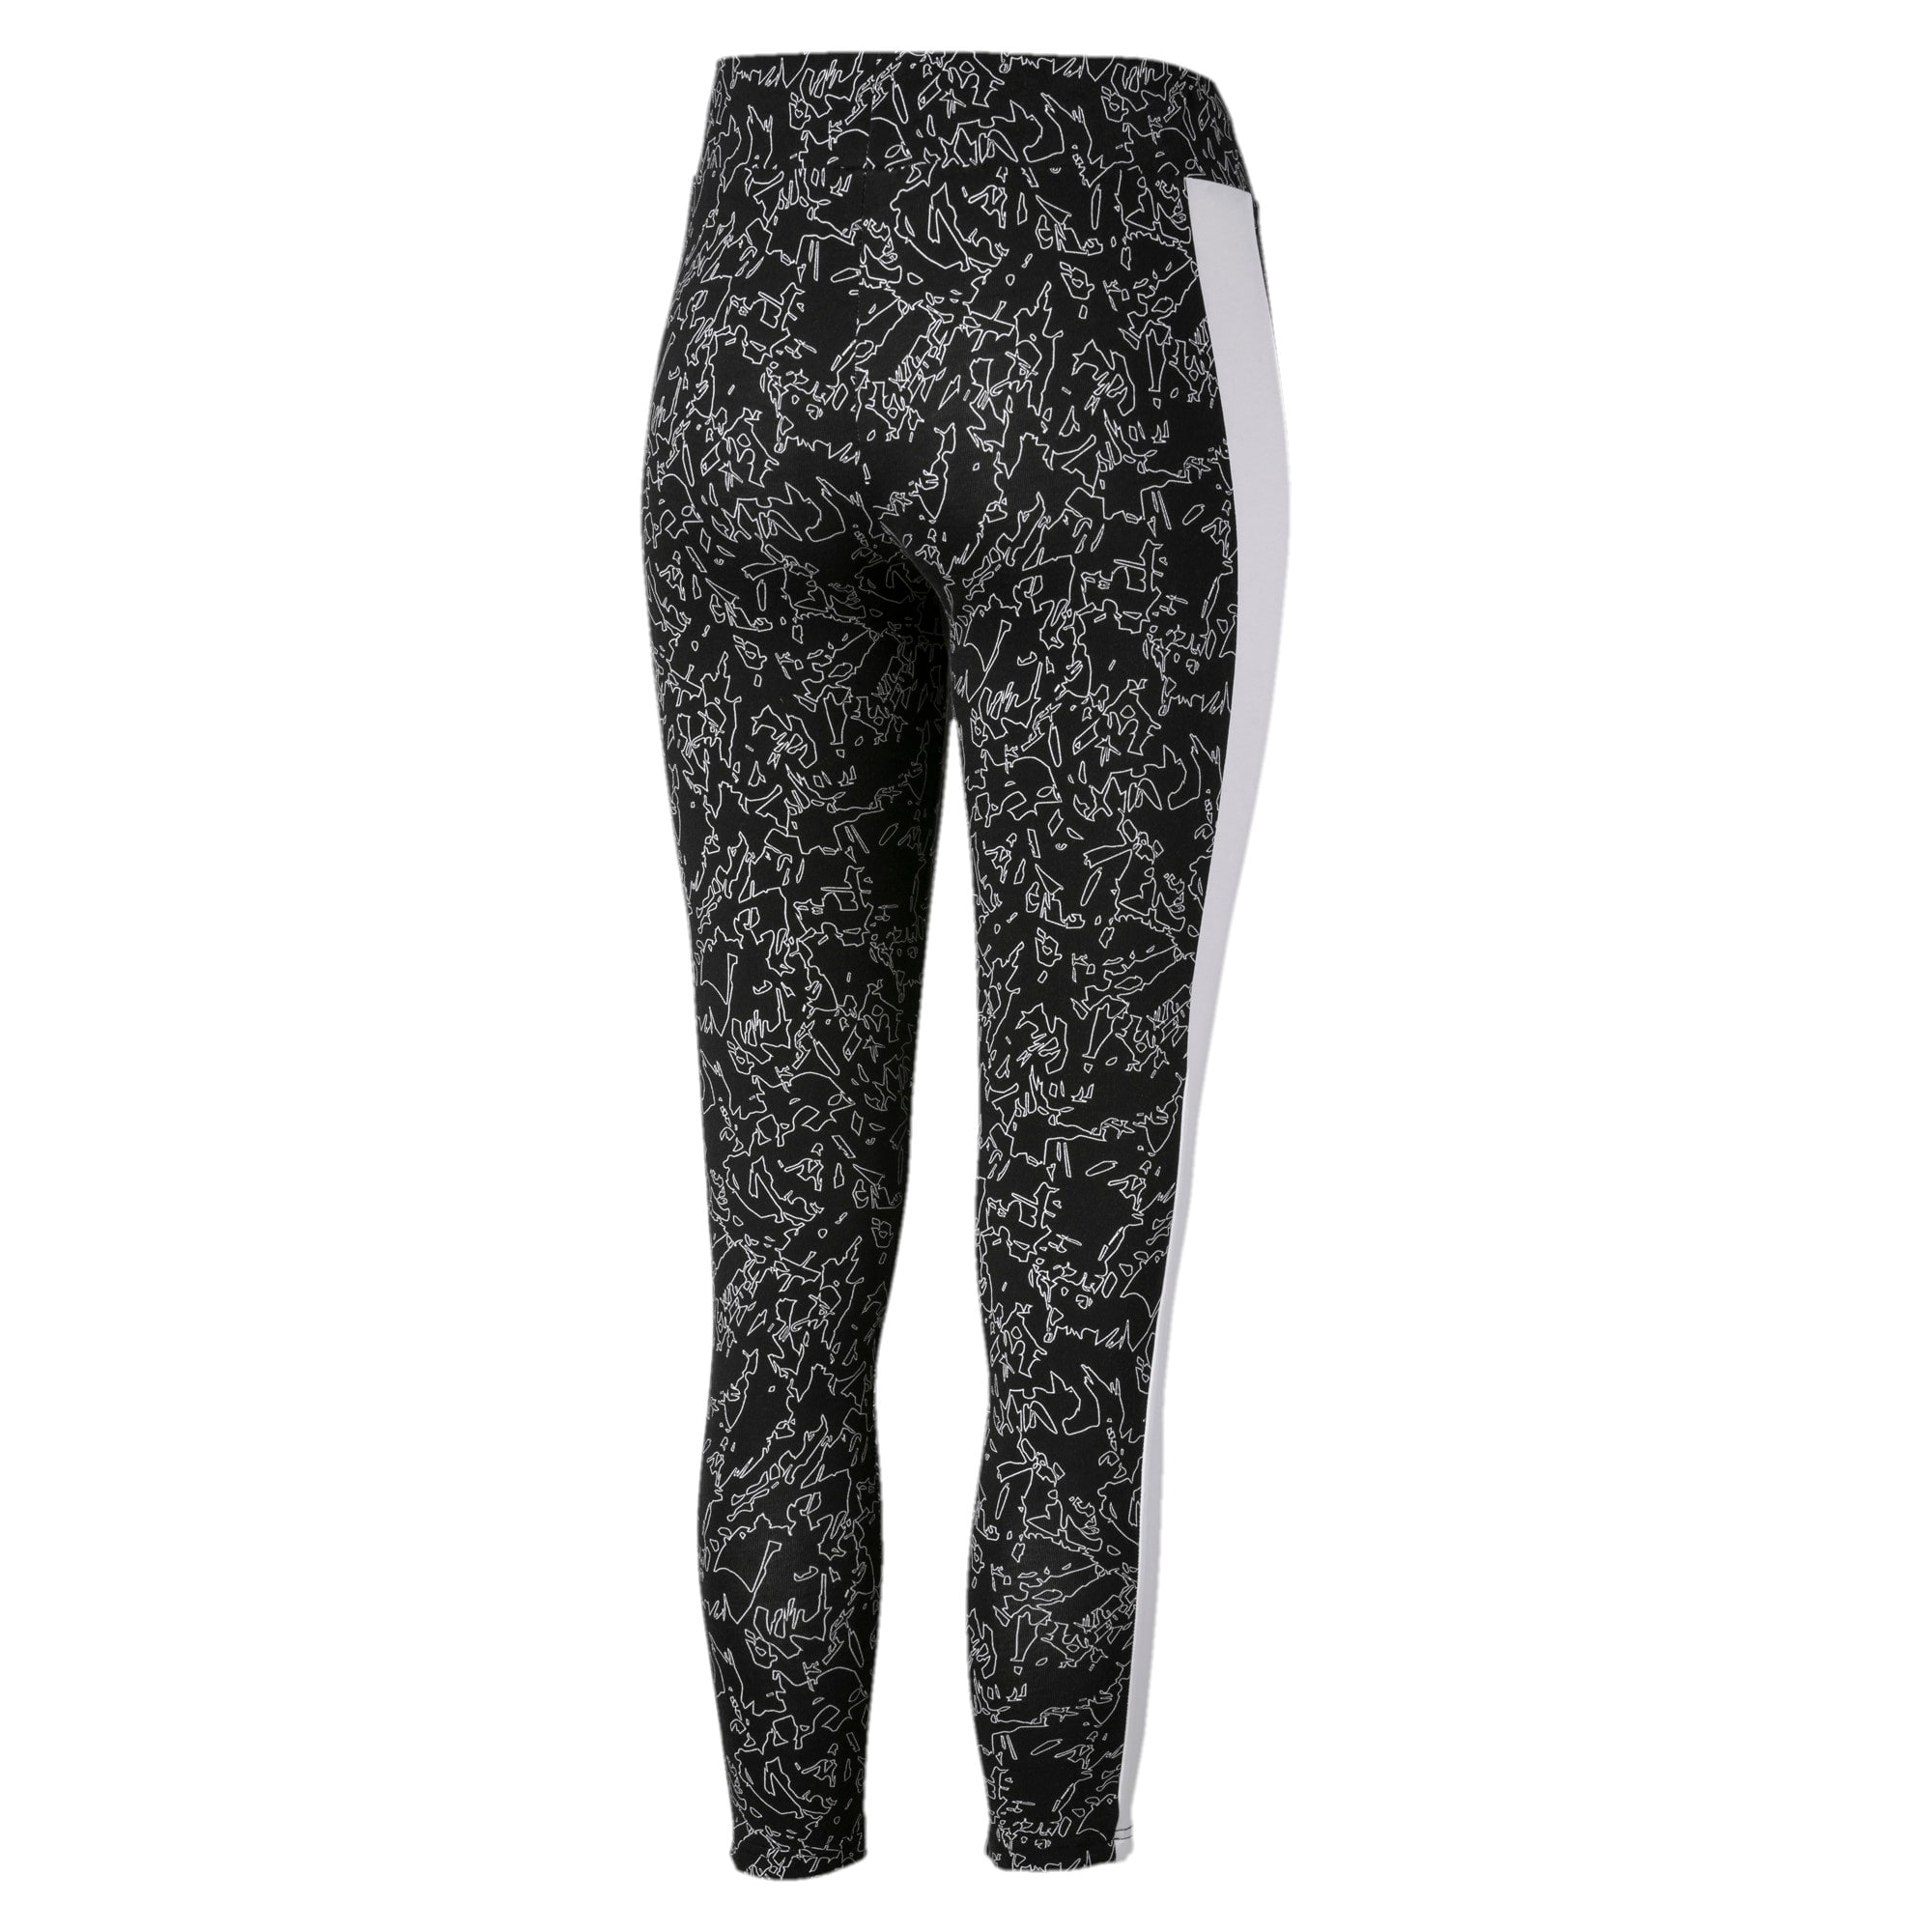 Thumbnail 5 of Classics T7 Women's Leggings, Puma Black, medium